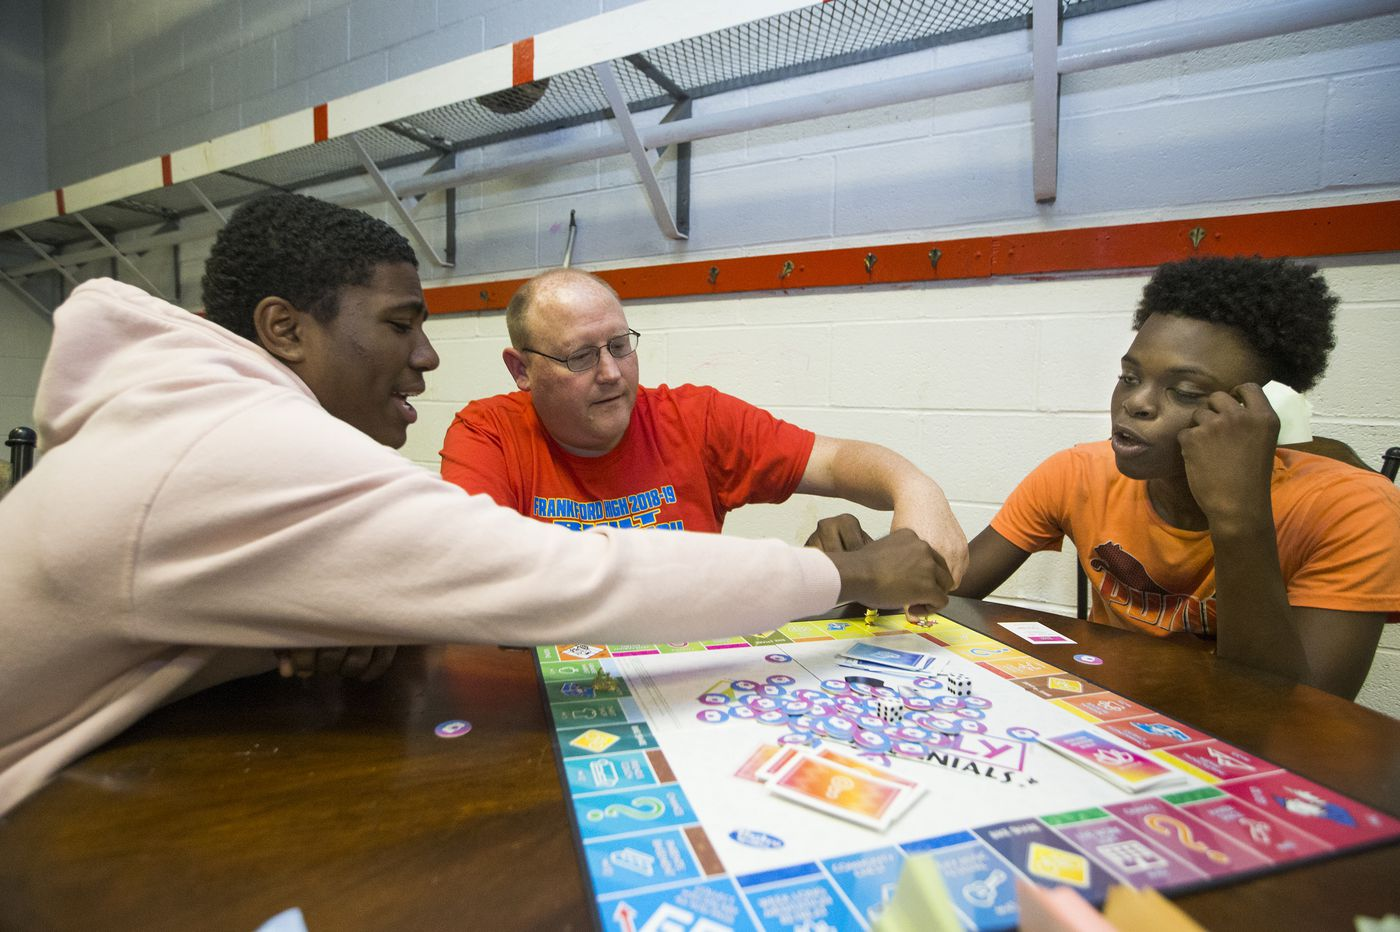 Frankford coach fights to save players from gun violence; The buildings Philadelphians want to save | Morning Newsletter